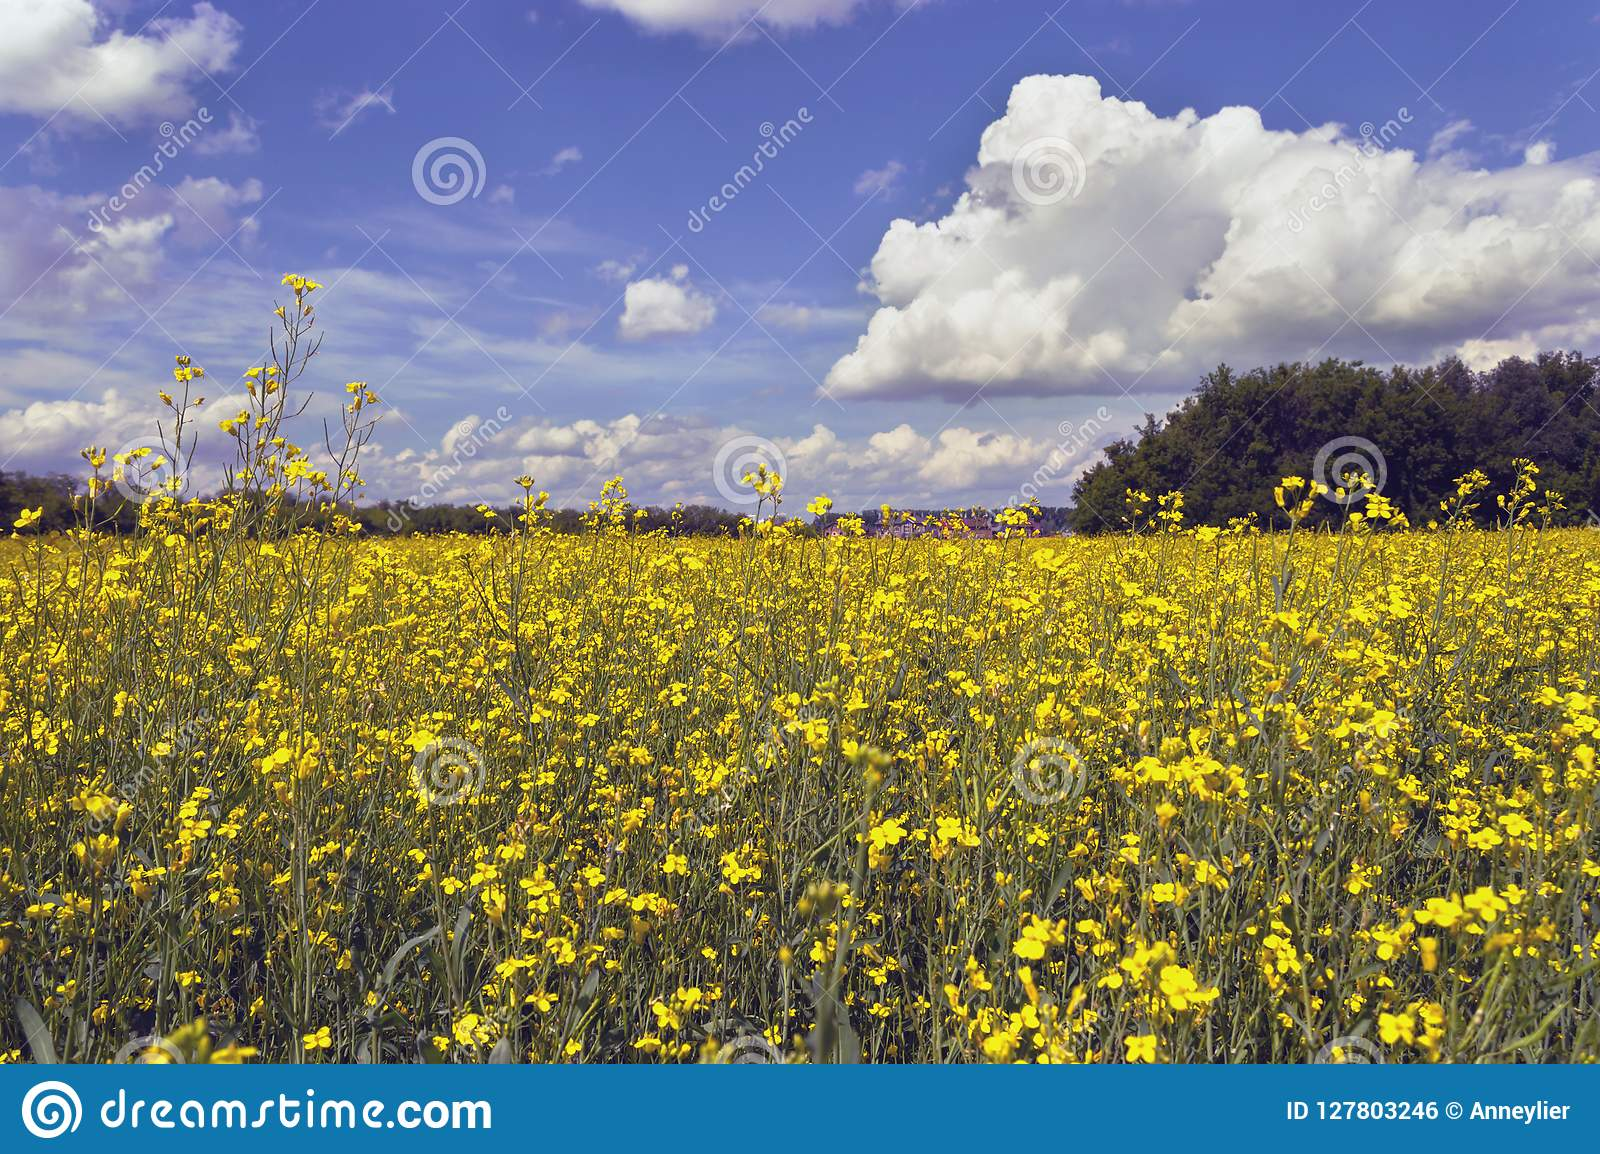 Coleseed field in bloom with clouds